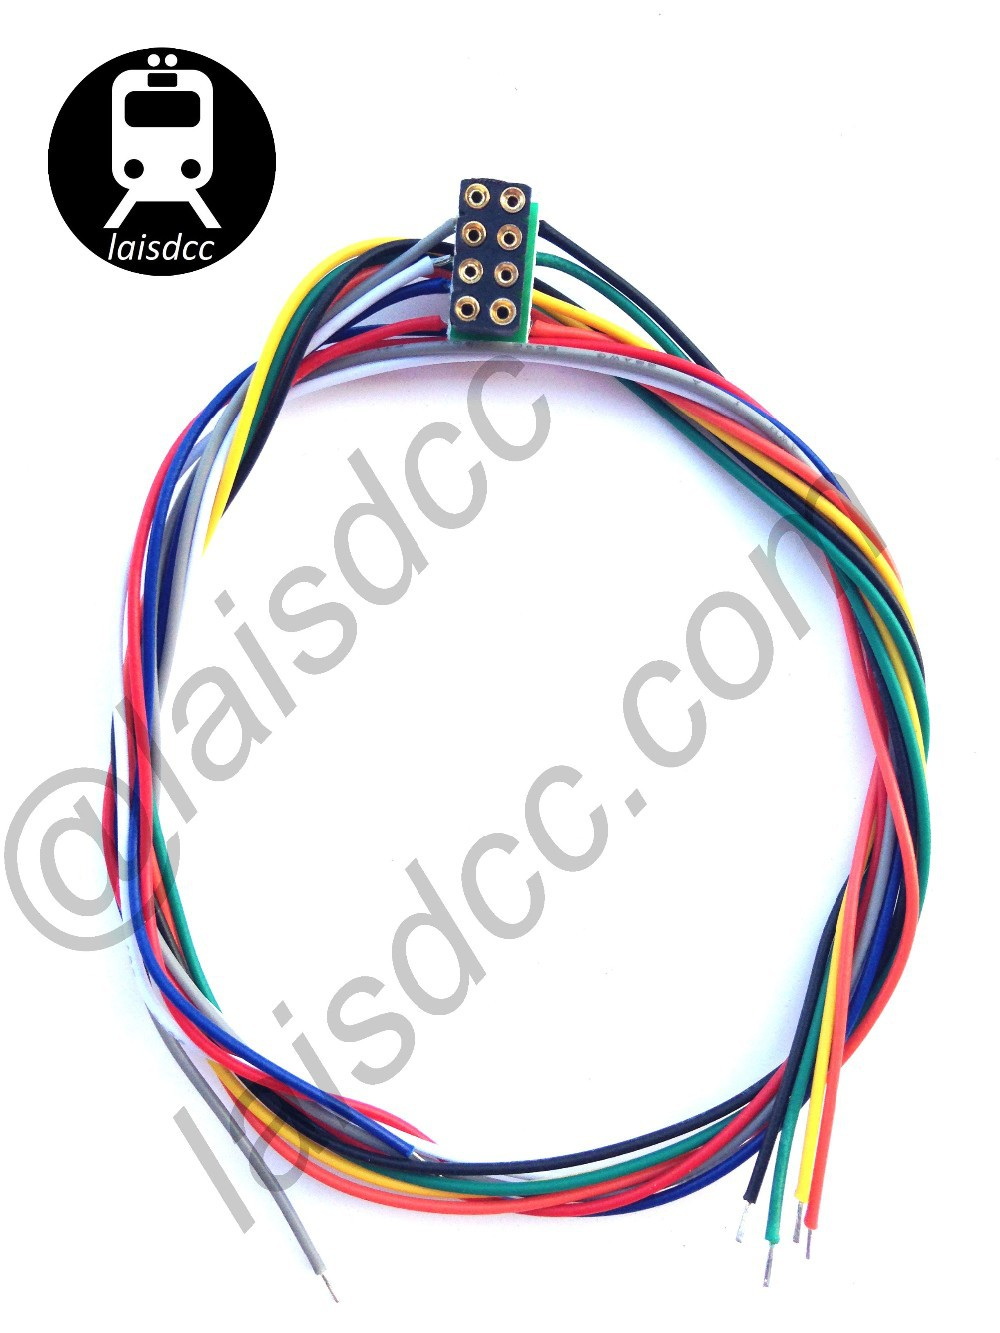 10PCS 8 PIN DCC DECODER SOCKETS NEM 652 WITH WIRED HARNESS 860001/LaisDcc Brand